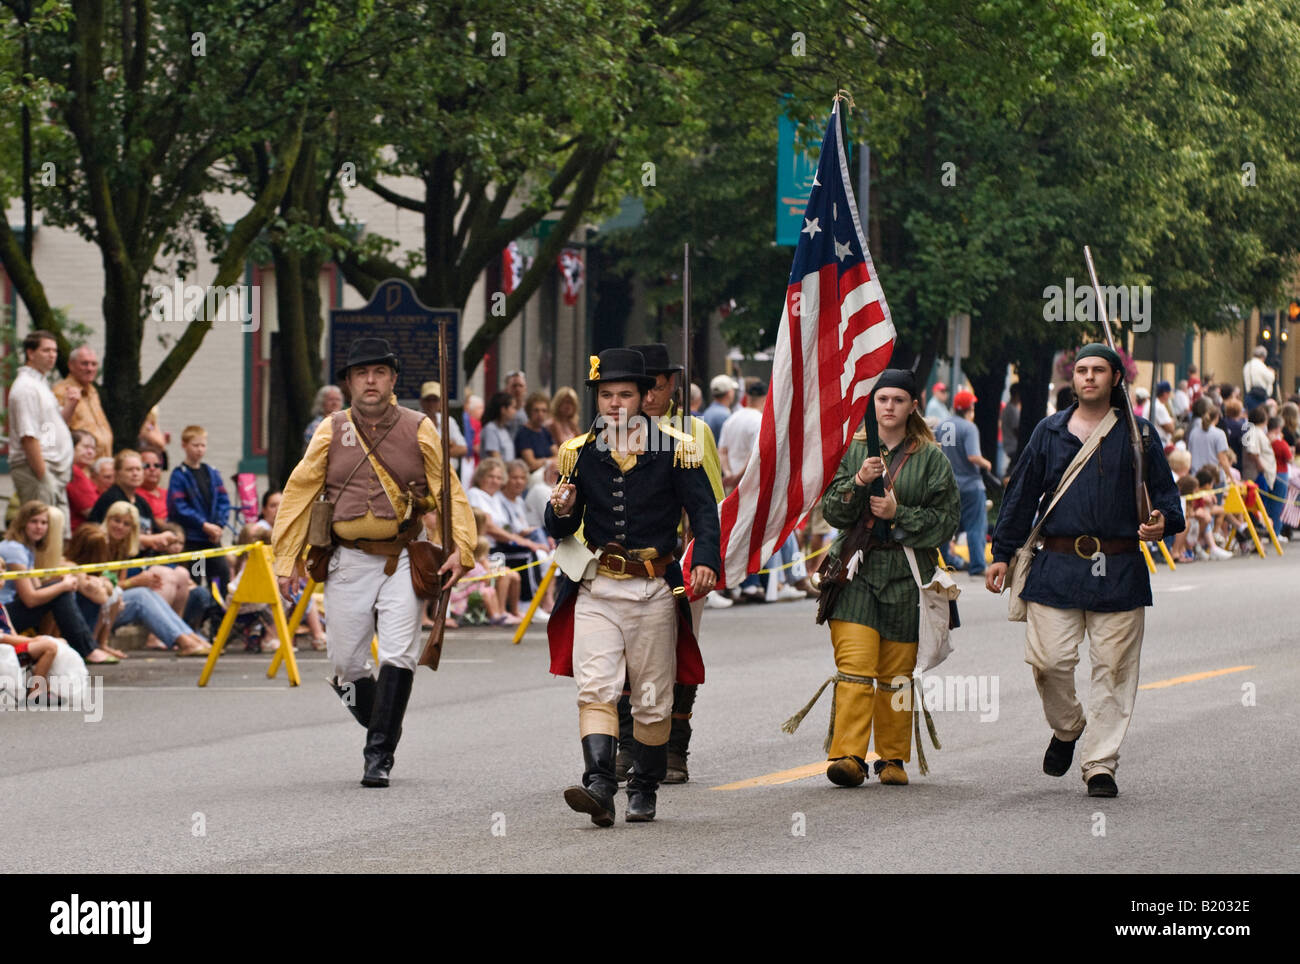 Reenactment Group Carrying American Flag in Independence Day Parade Corydon Indiana - Stock Image